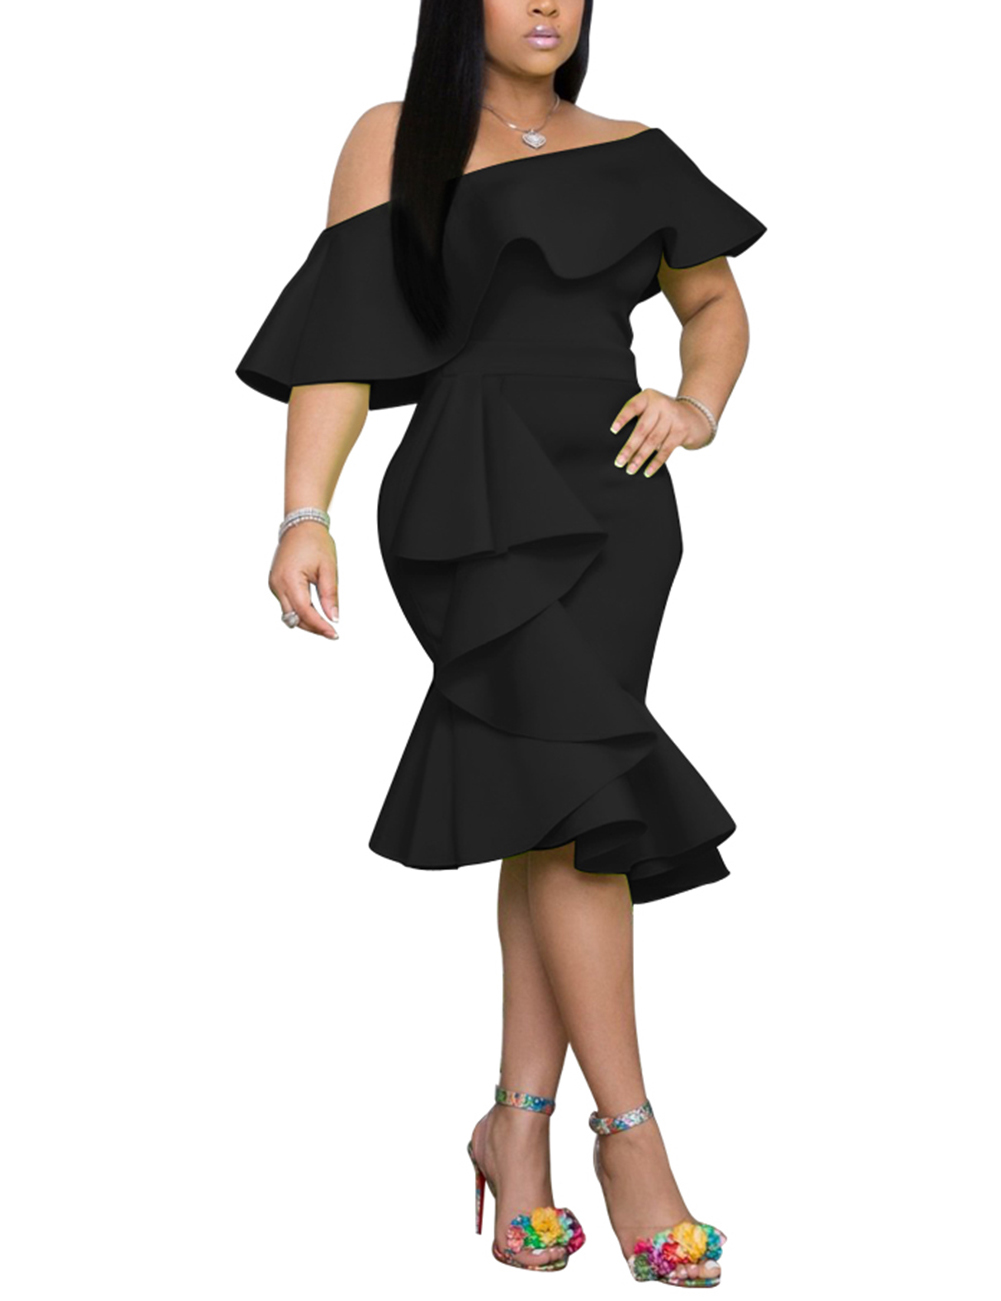 //cdn.affectcloud.com/hexinfashion/upload/imgs/Dress/Bodycon_Dress/VZ190408-BK1/VZ190408-BK1-201911055dc1329bbb65f.jpg